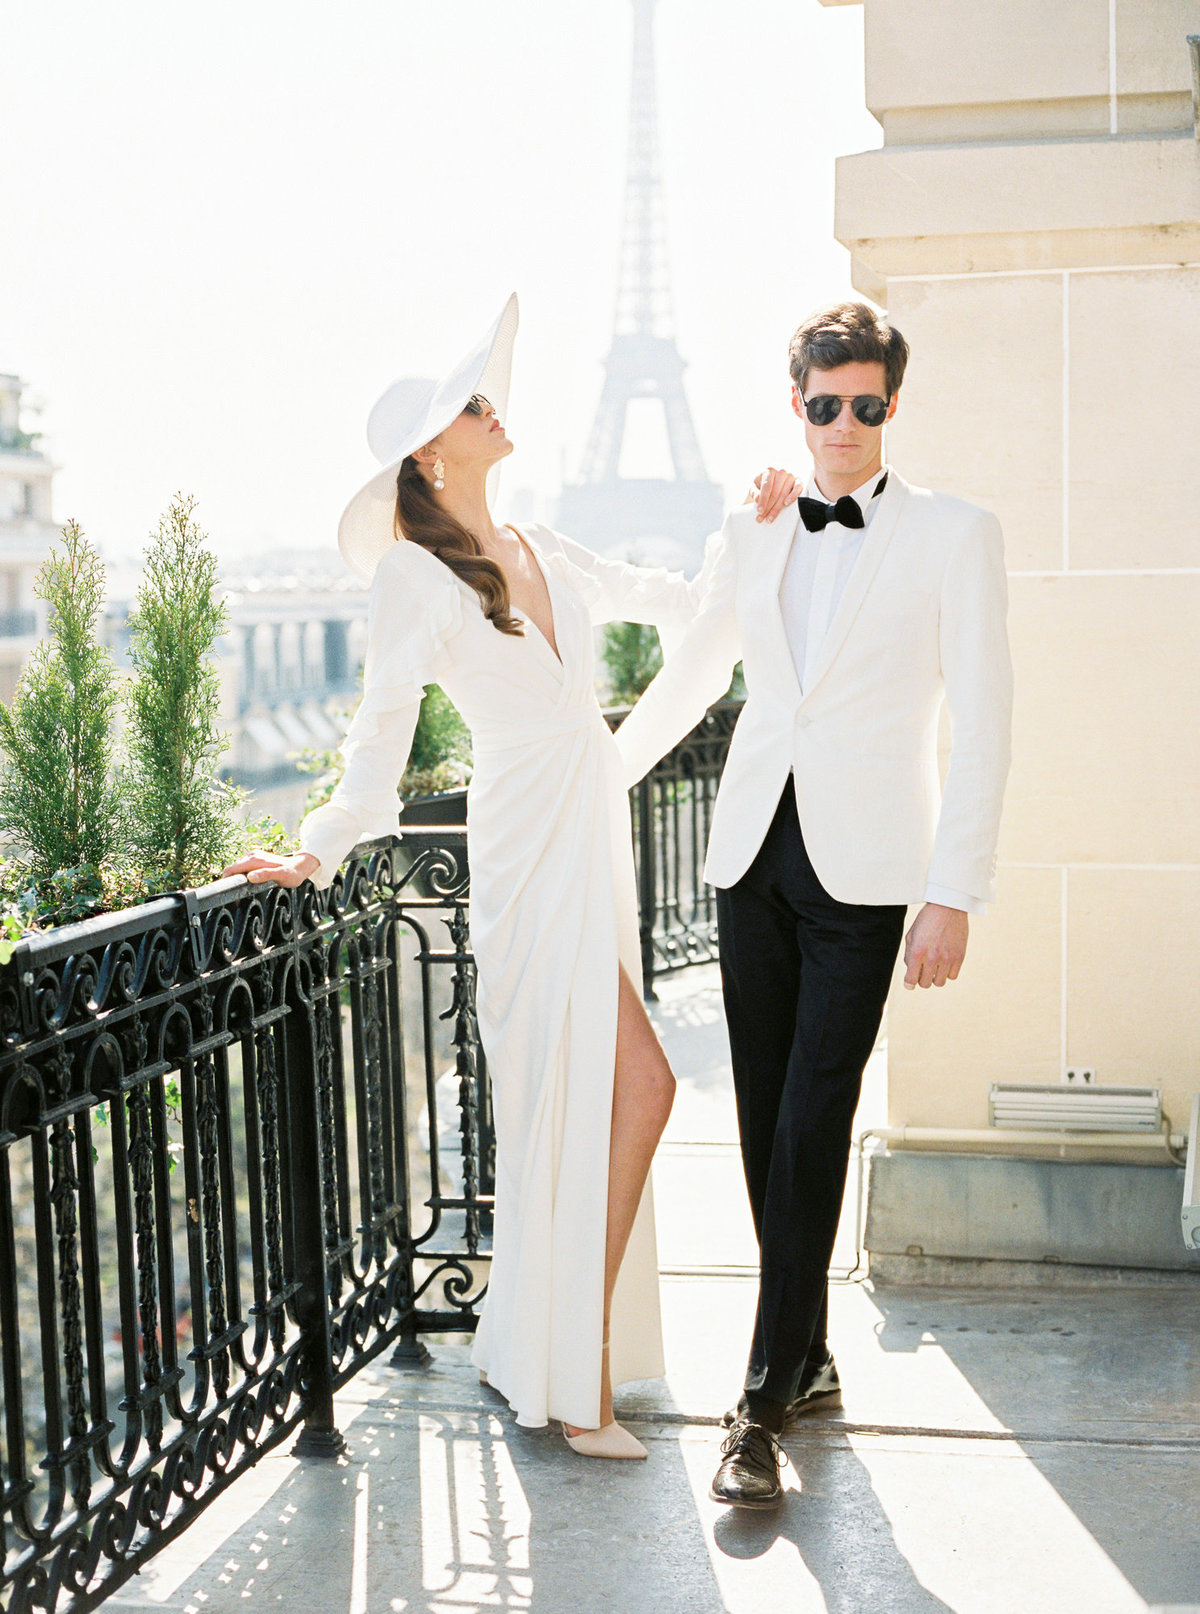 Paris_wedding_photographer_claire_Morris_130